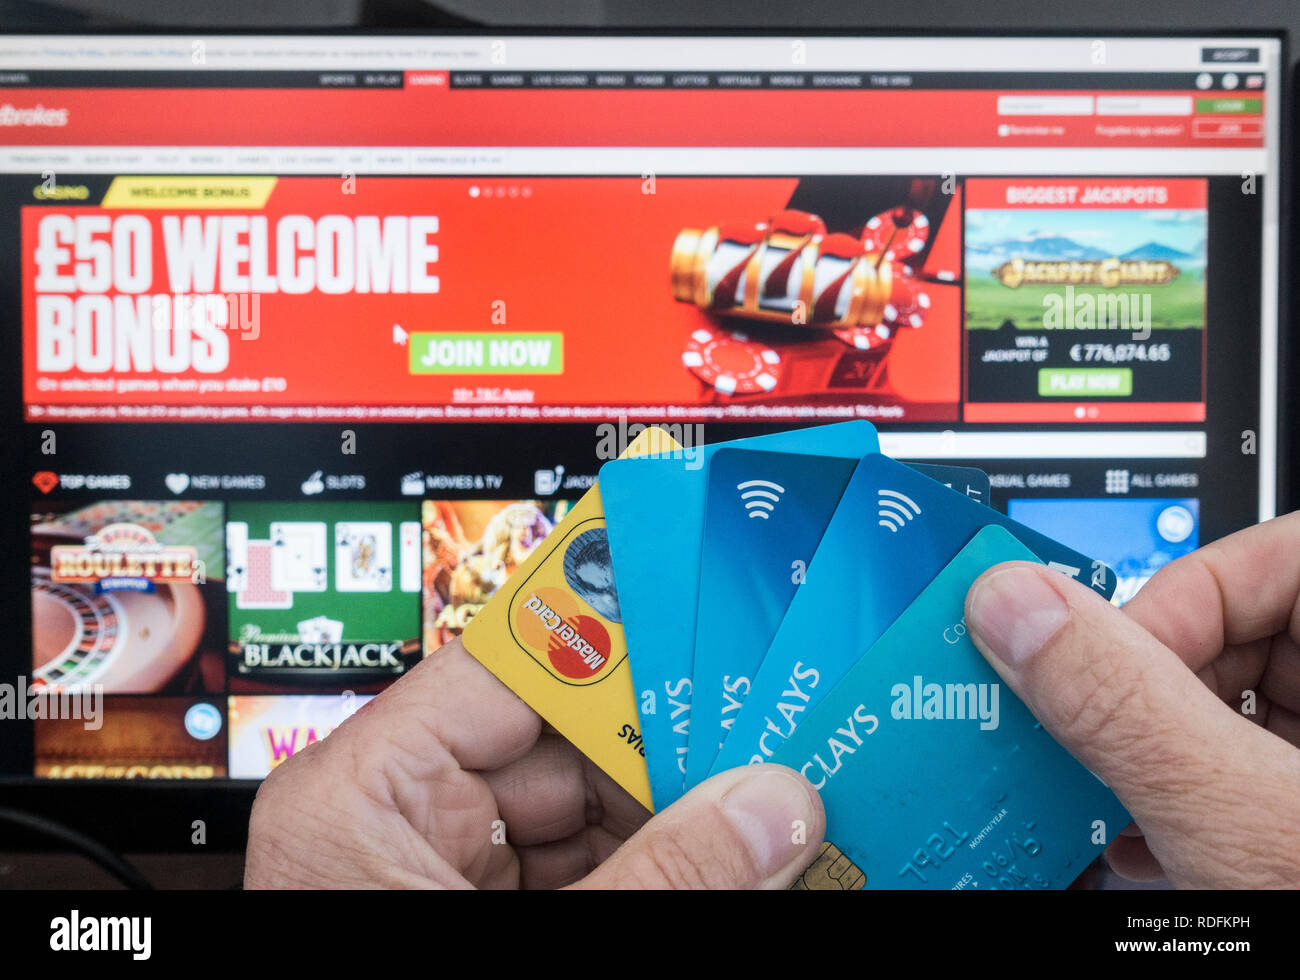 Online gambling. Person holding credit cards with Ladbrokes website on computer sreen in background. - Stock Image